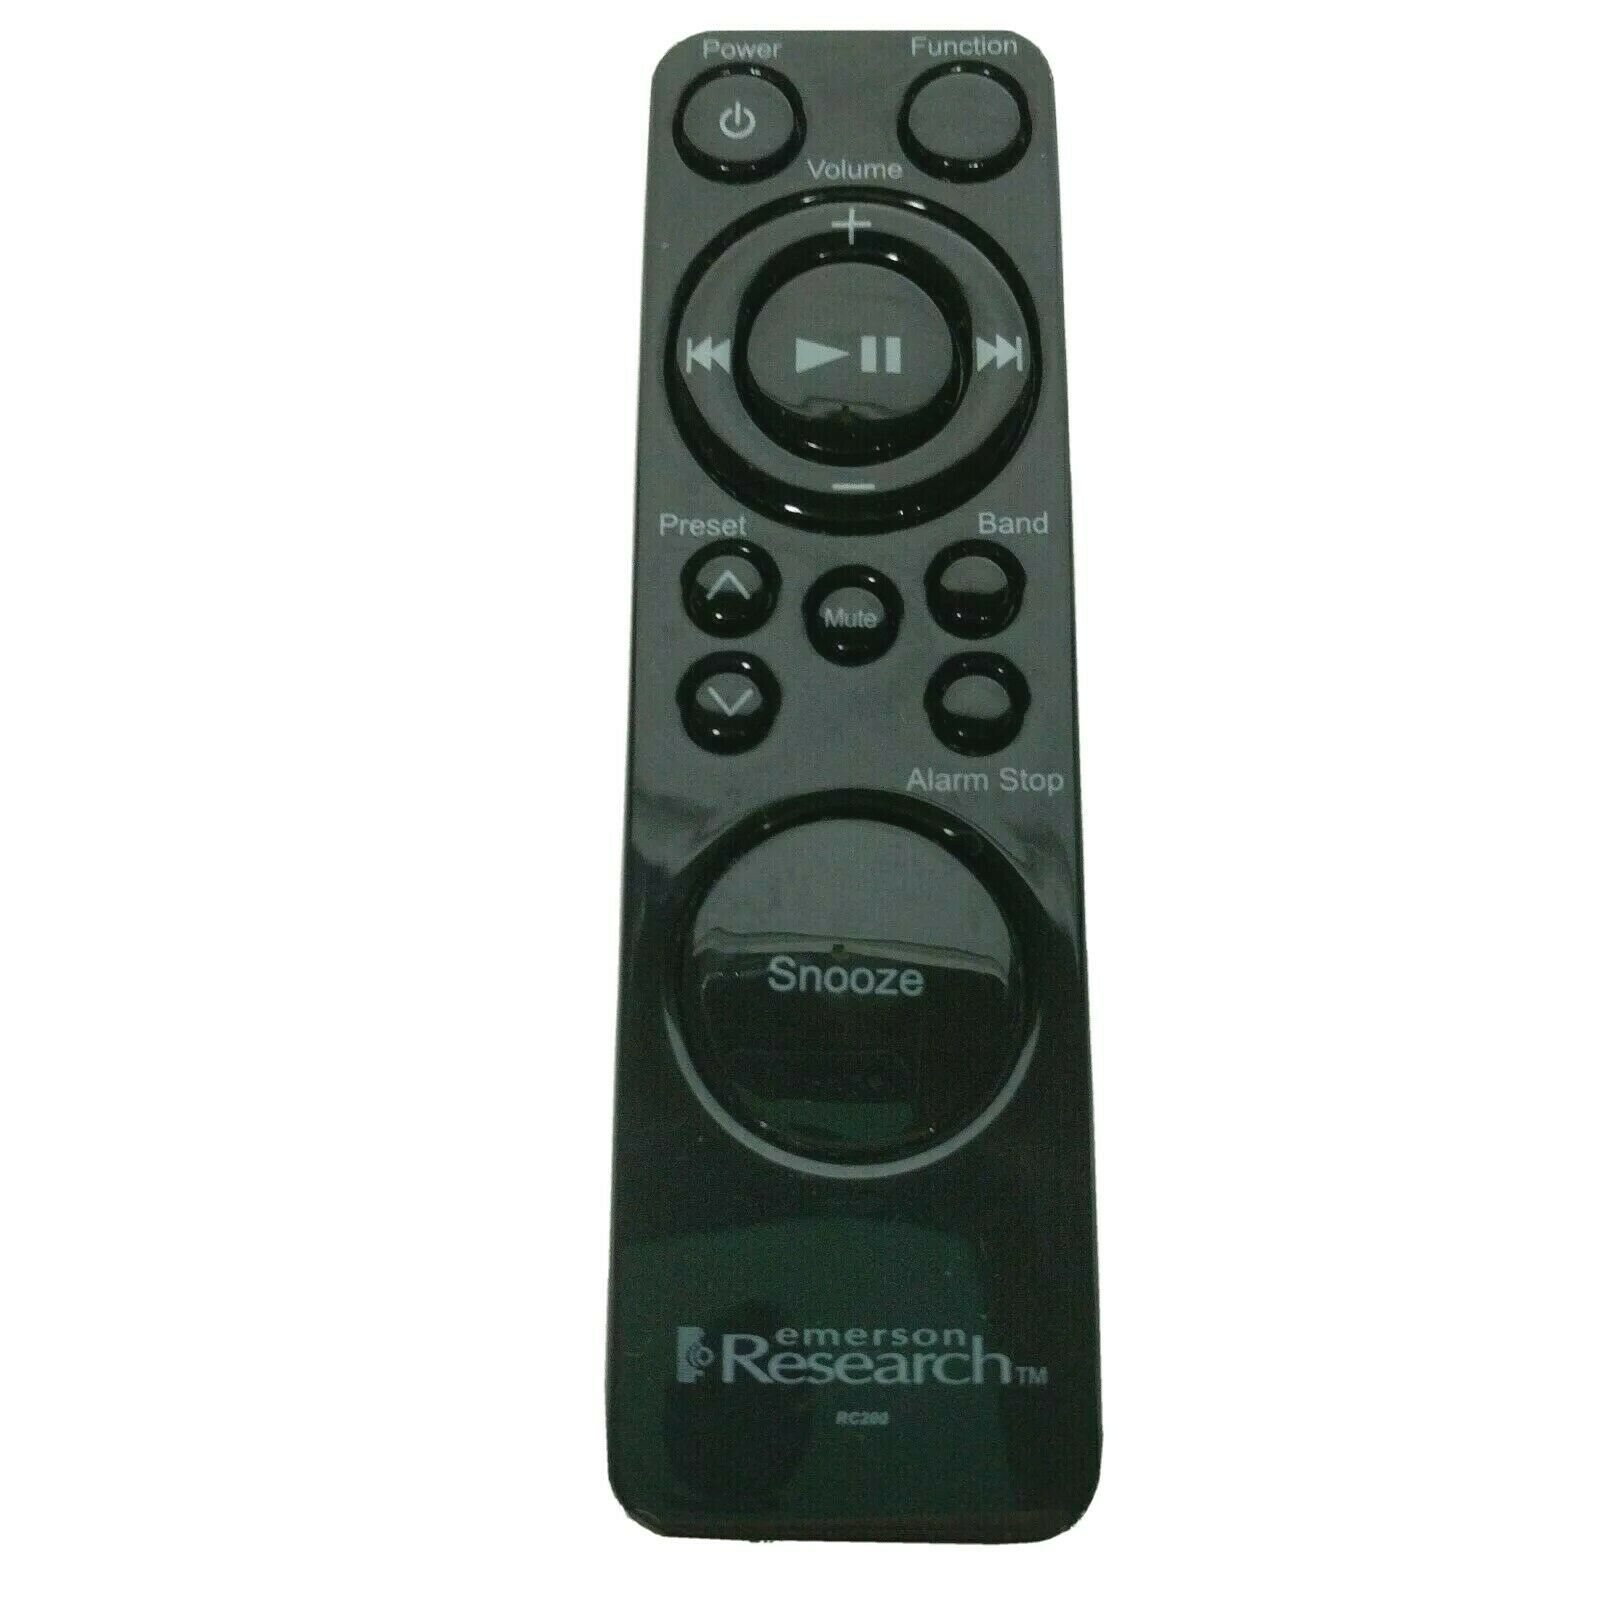 Genuine Emerson Research Alarm Clock Remote Control RC200 Tested Works - $14.54